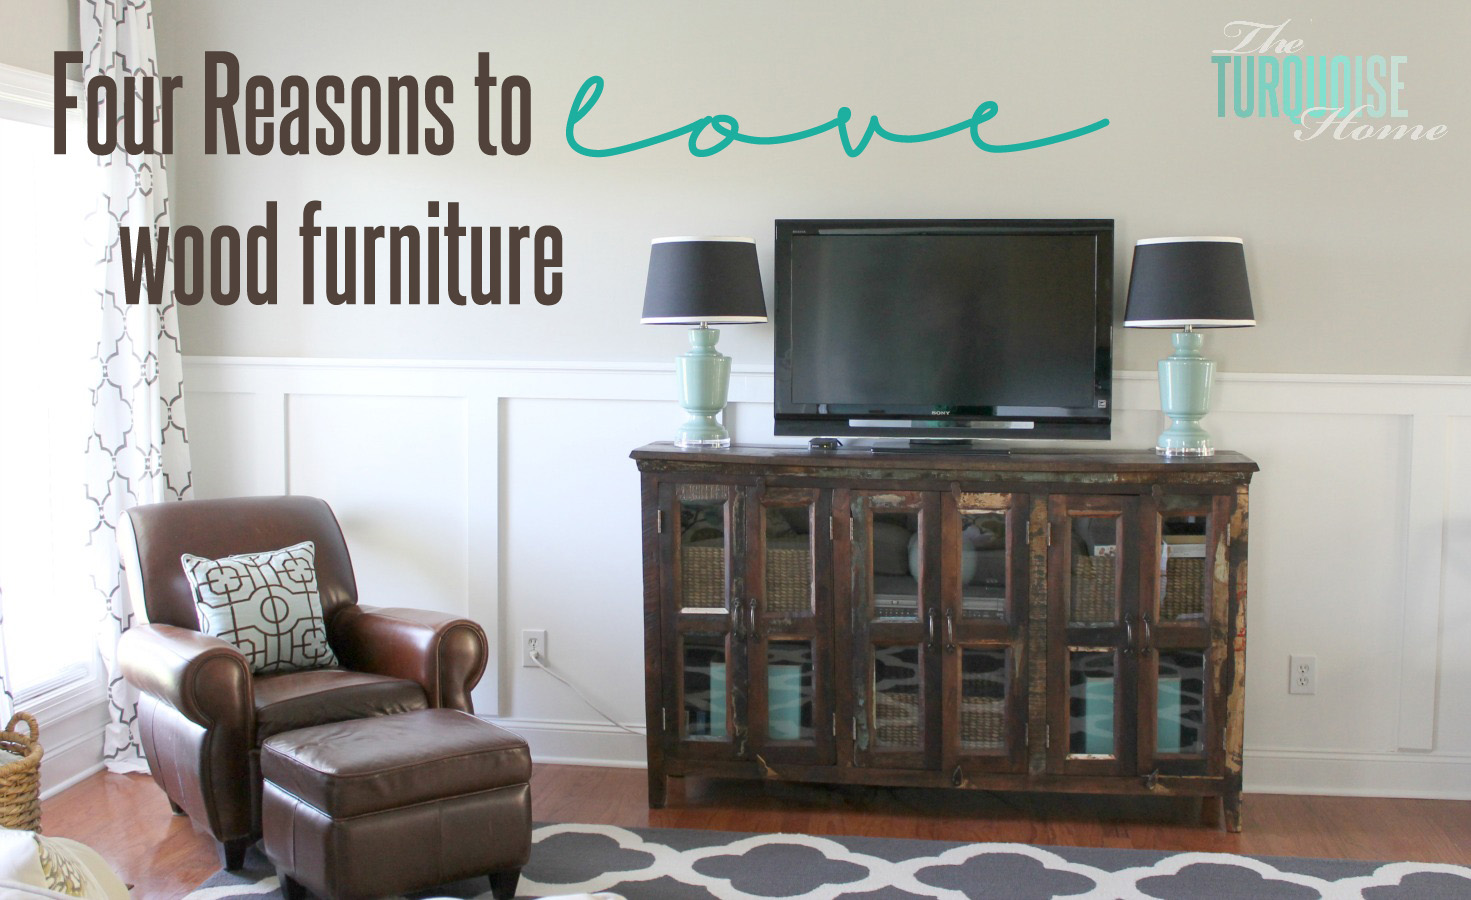 Four Reasons To Love Wood Furniture The Turquoise Home